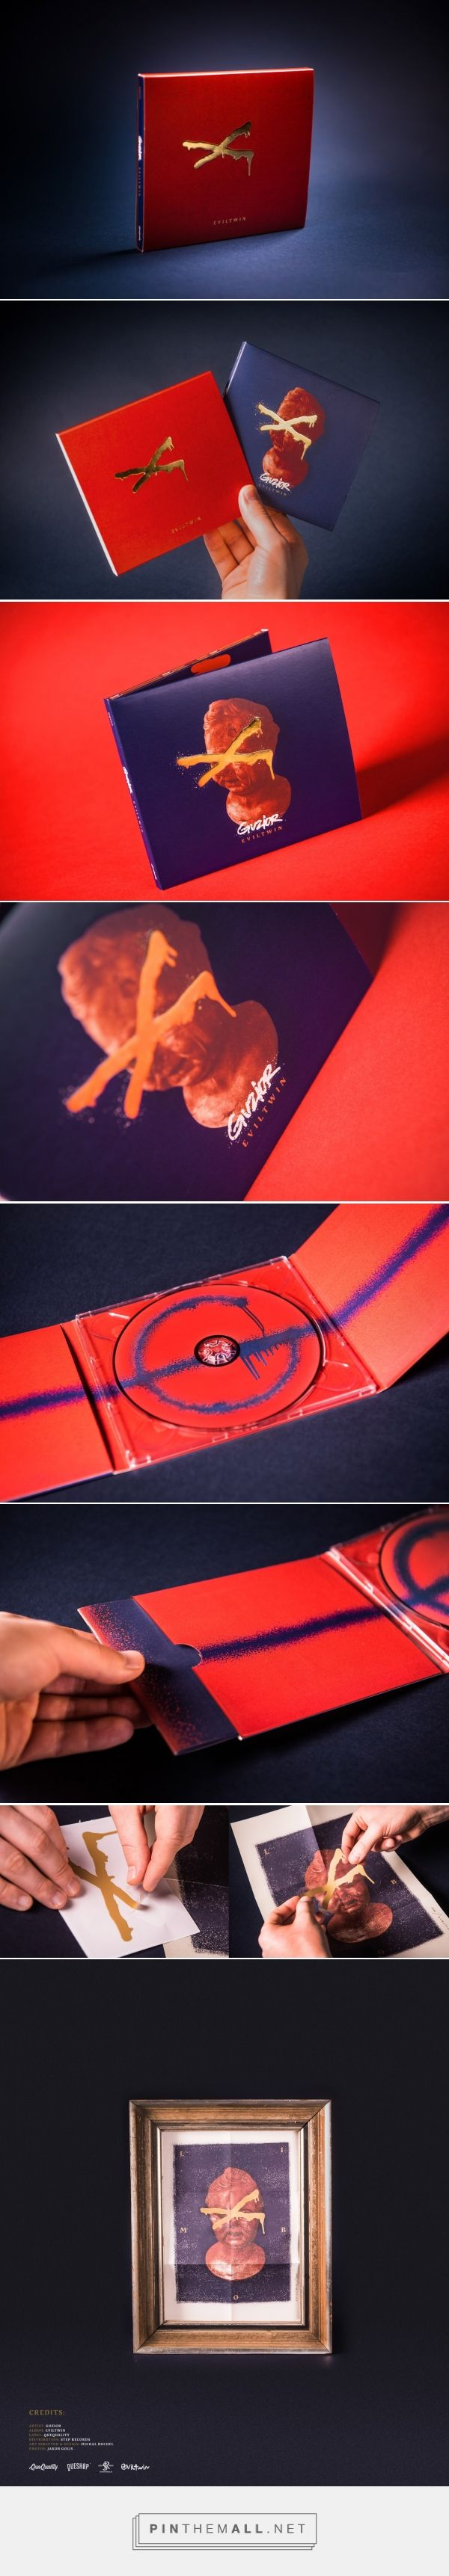 Guzior - Eviltwin / Digipack - Packaging of the World - Creative Package Design Gallery - http://www.packagingoftheworld.com/2017/03/guzior-eviltwin-digipack.html